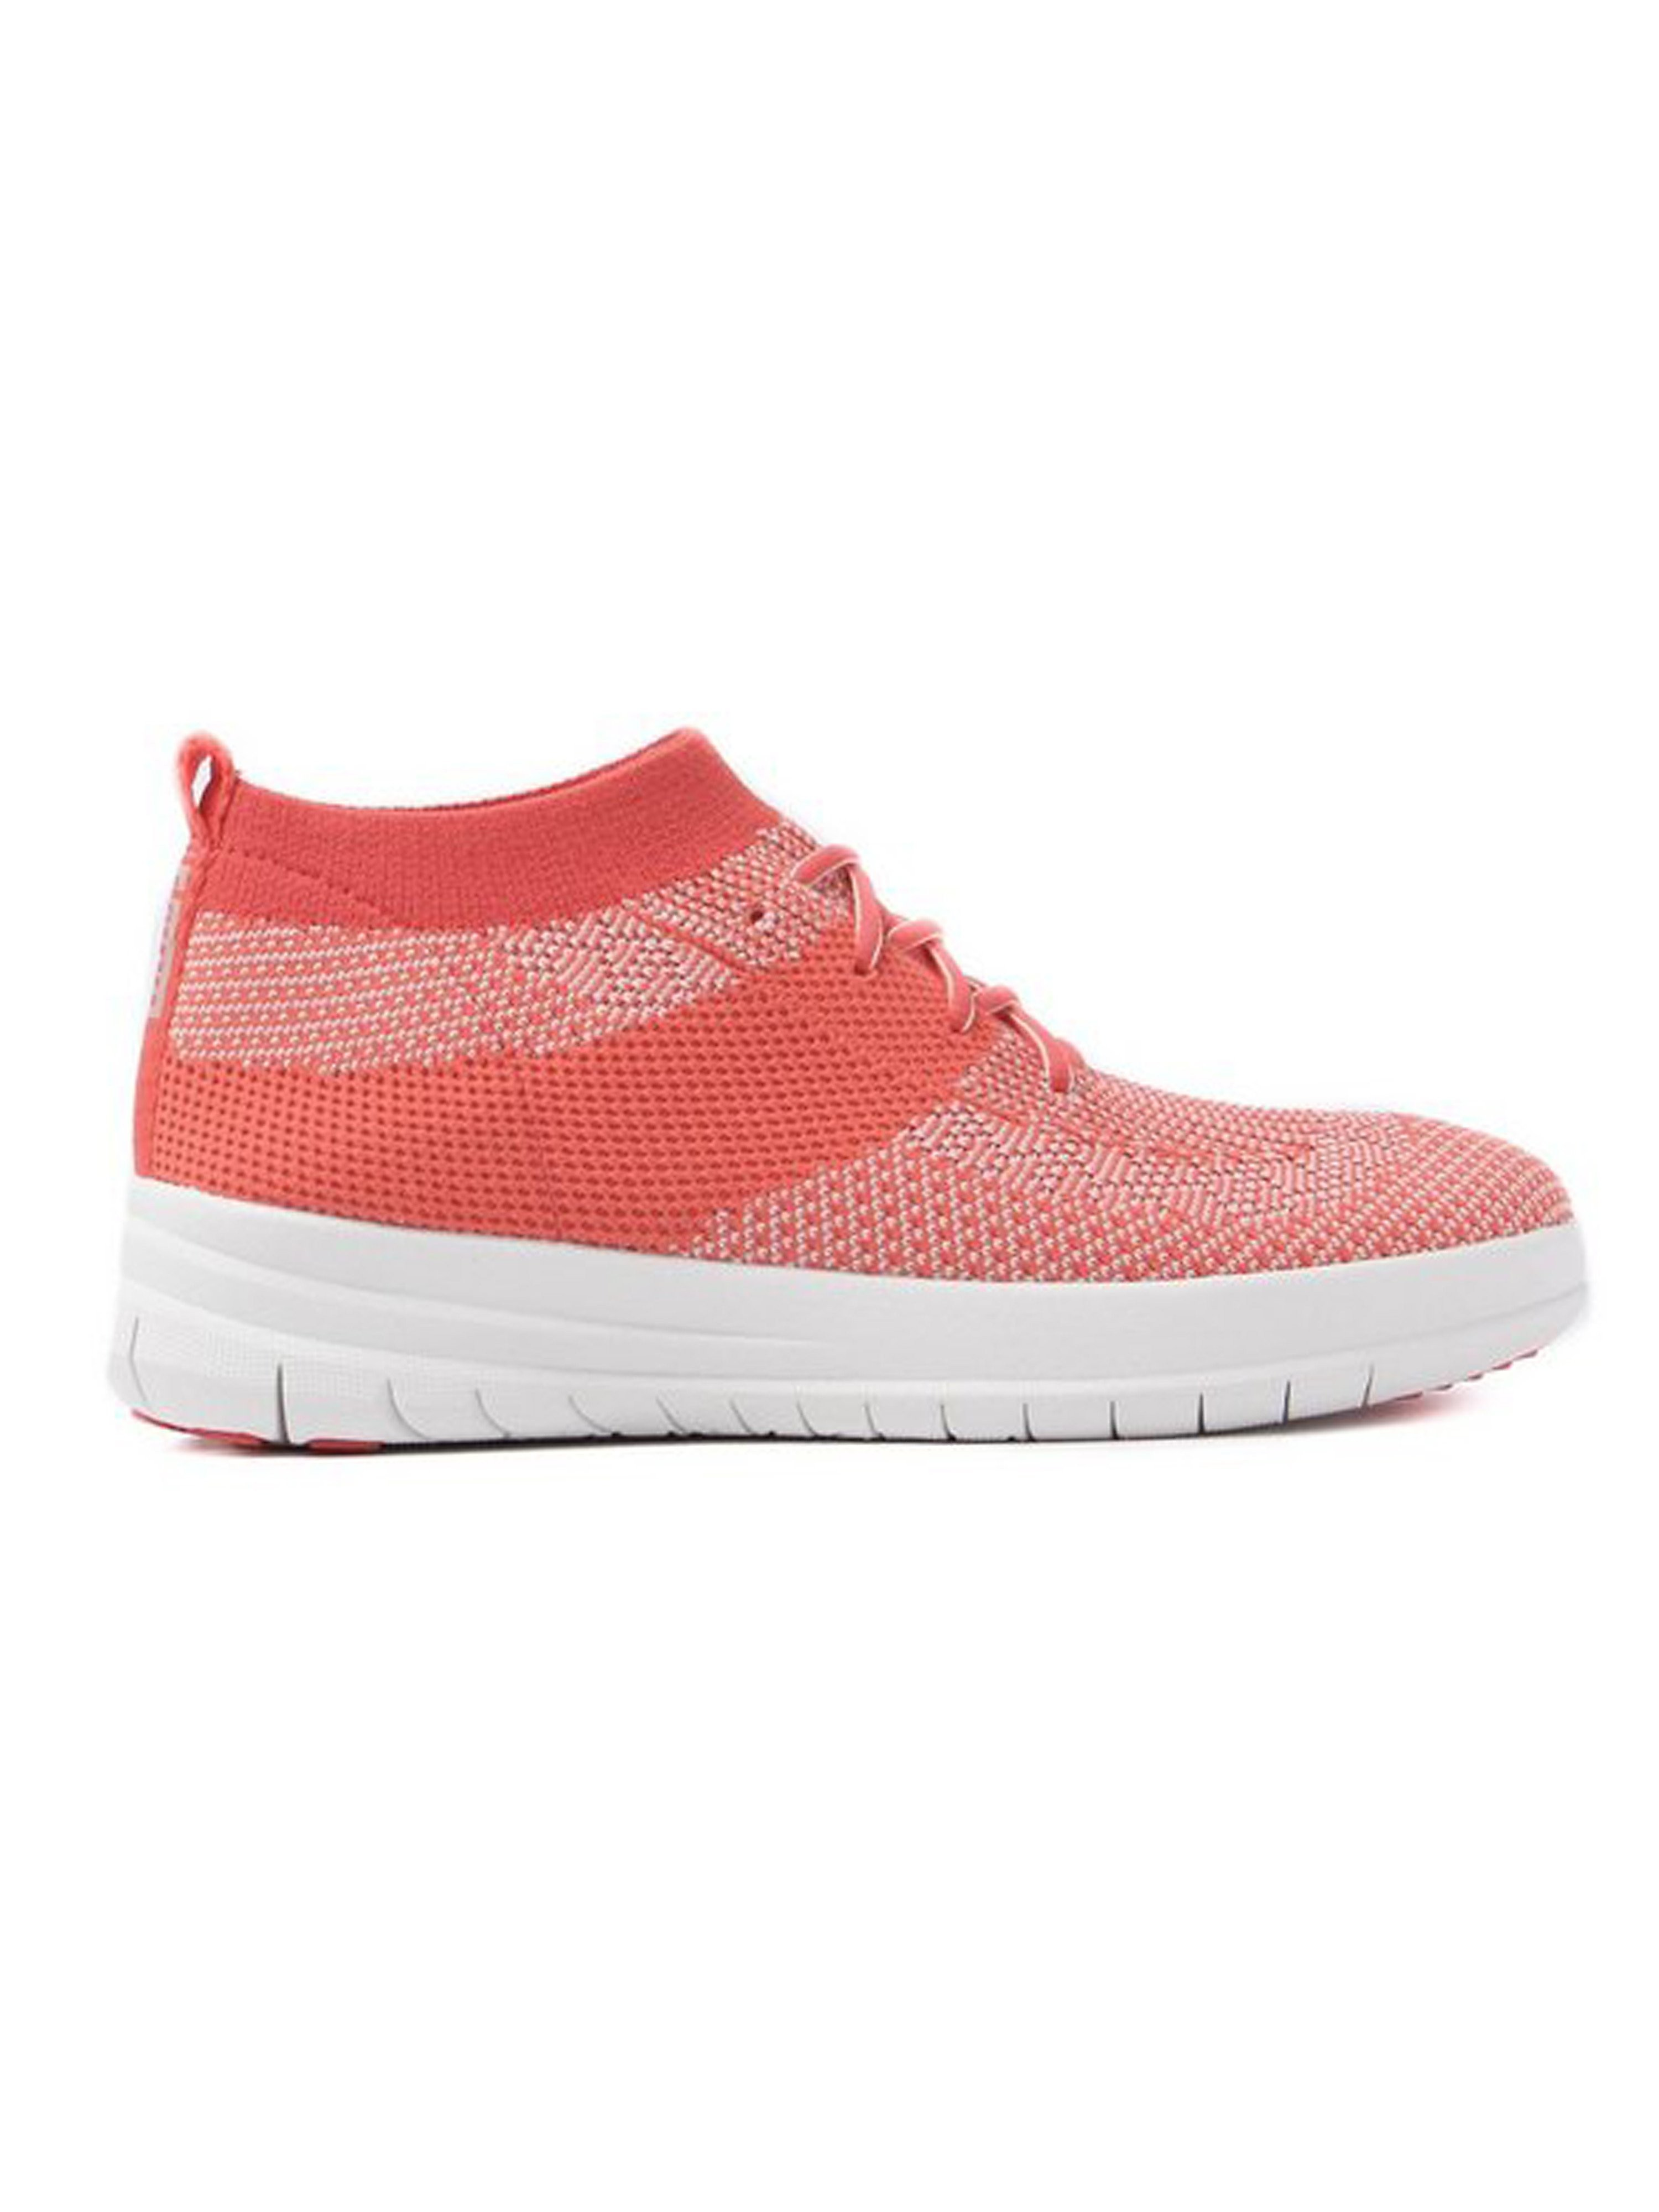 FitFlop Women's Überknit Slip-On High Top Trainers - Hot Coral & Neon Blush